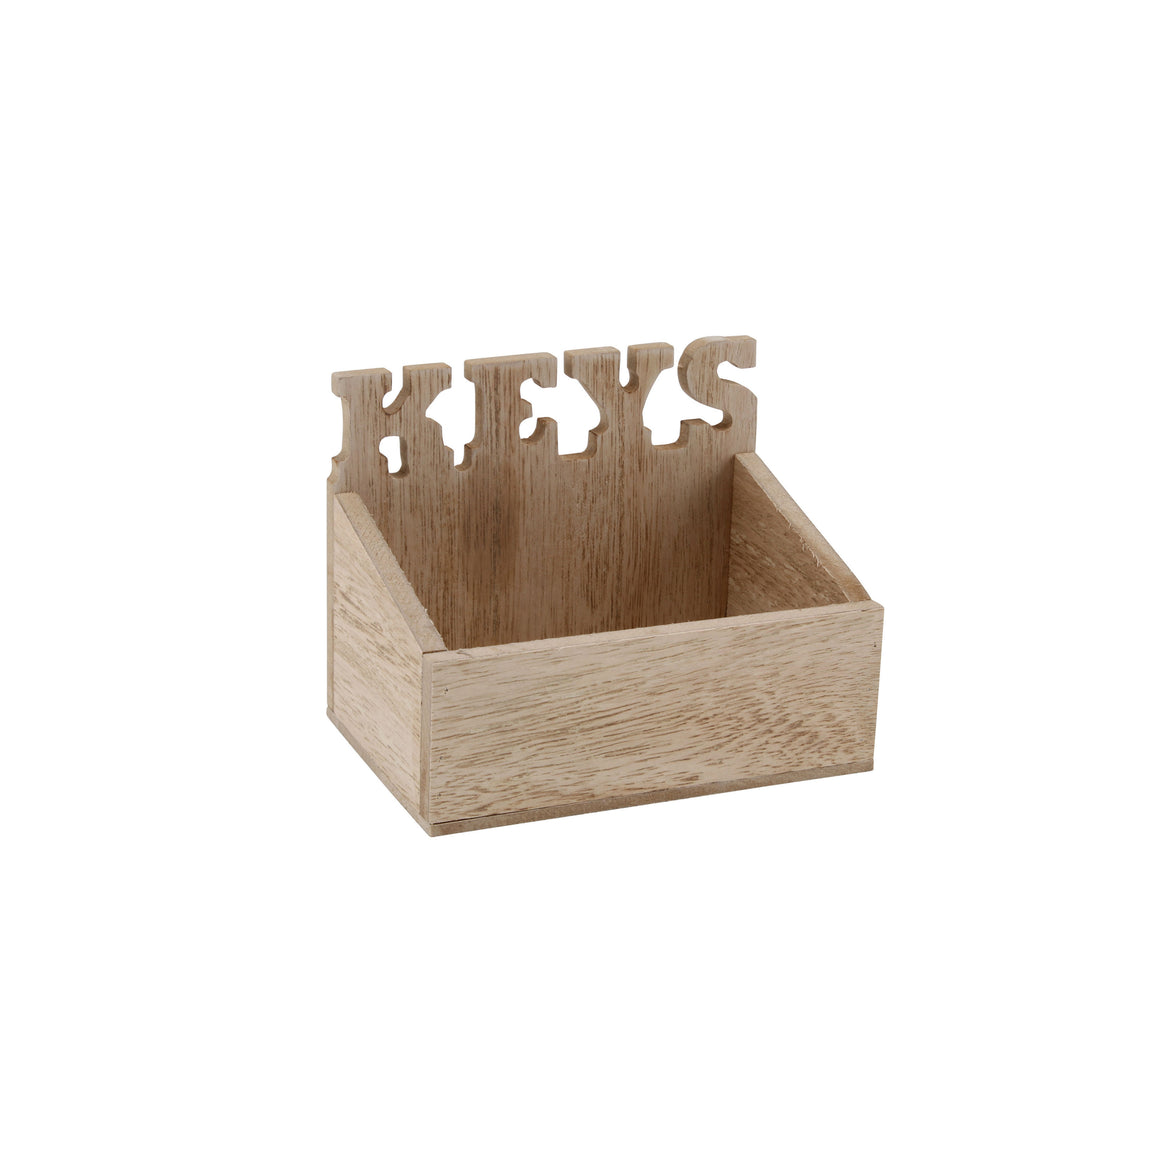 Holly House Natural Wood 'Keys' Box - The Love Trees